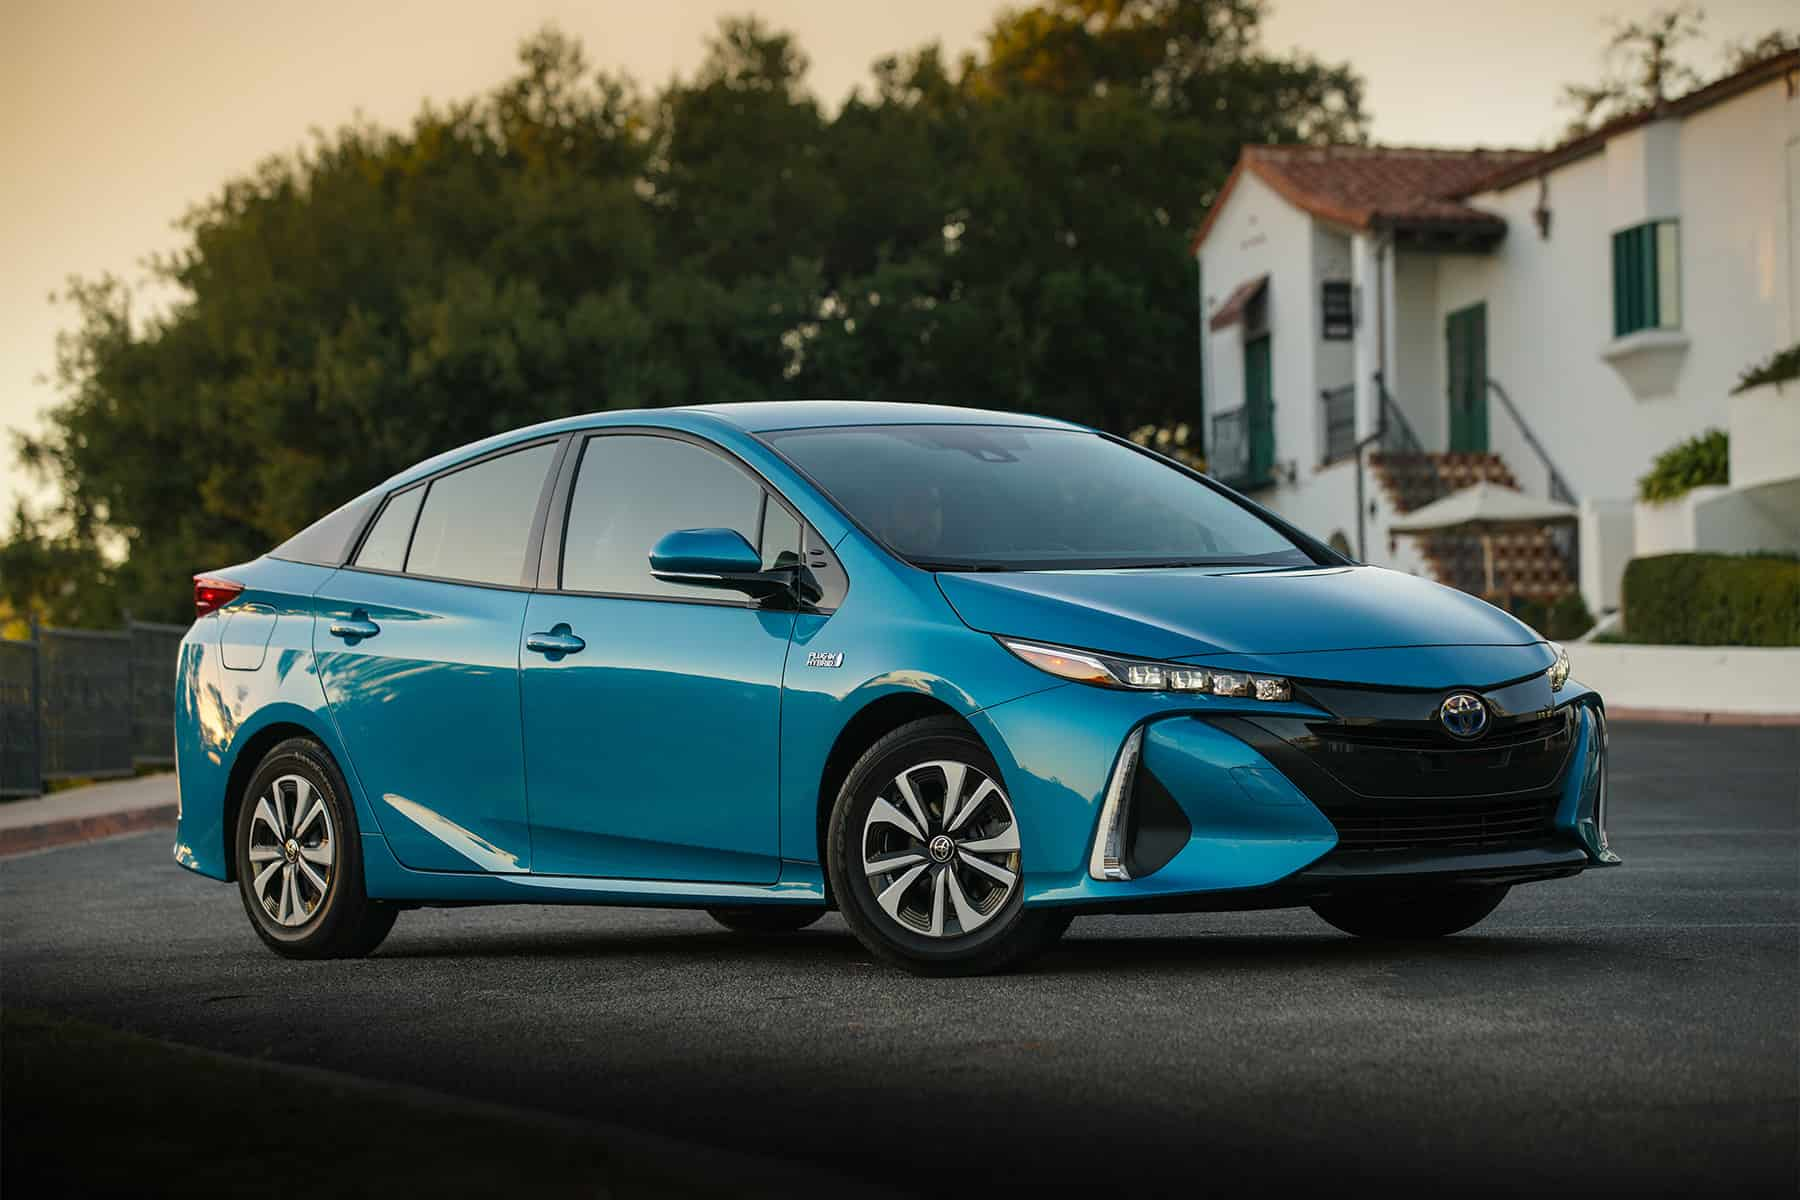 2017 toyota prius prime review global cars brands. Black Bedroom Furniture Sets. Home Design Ideas